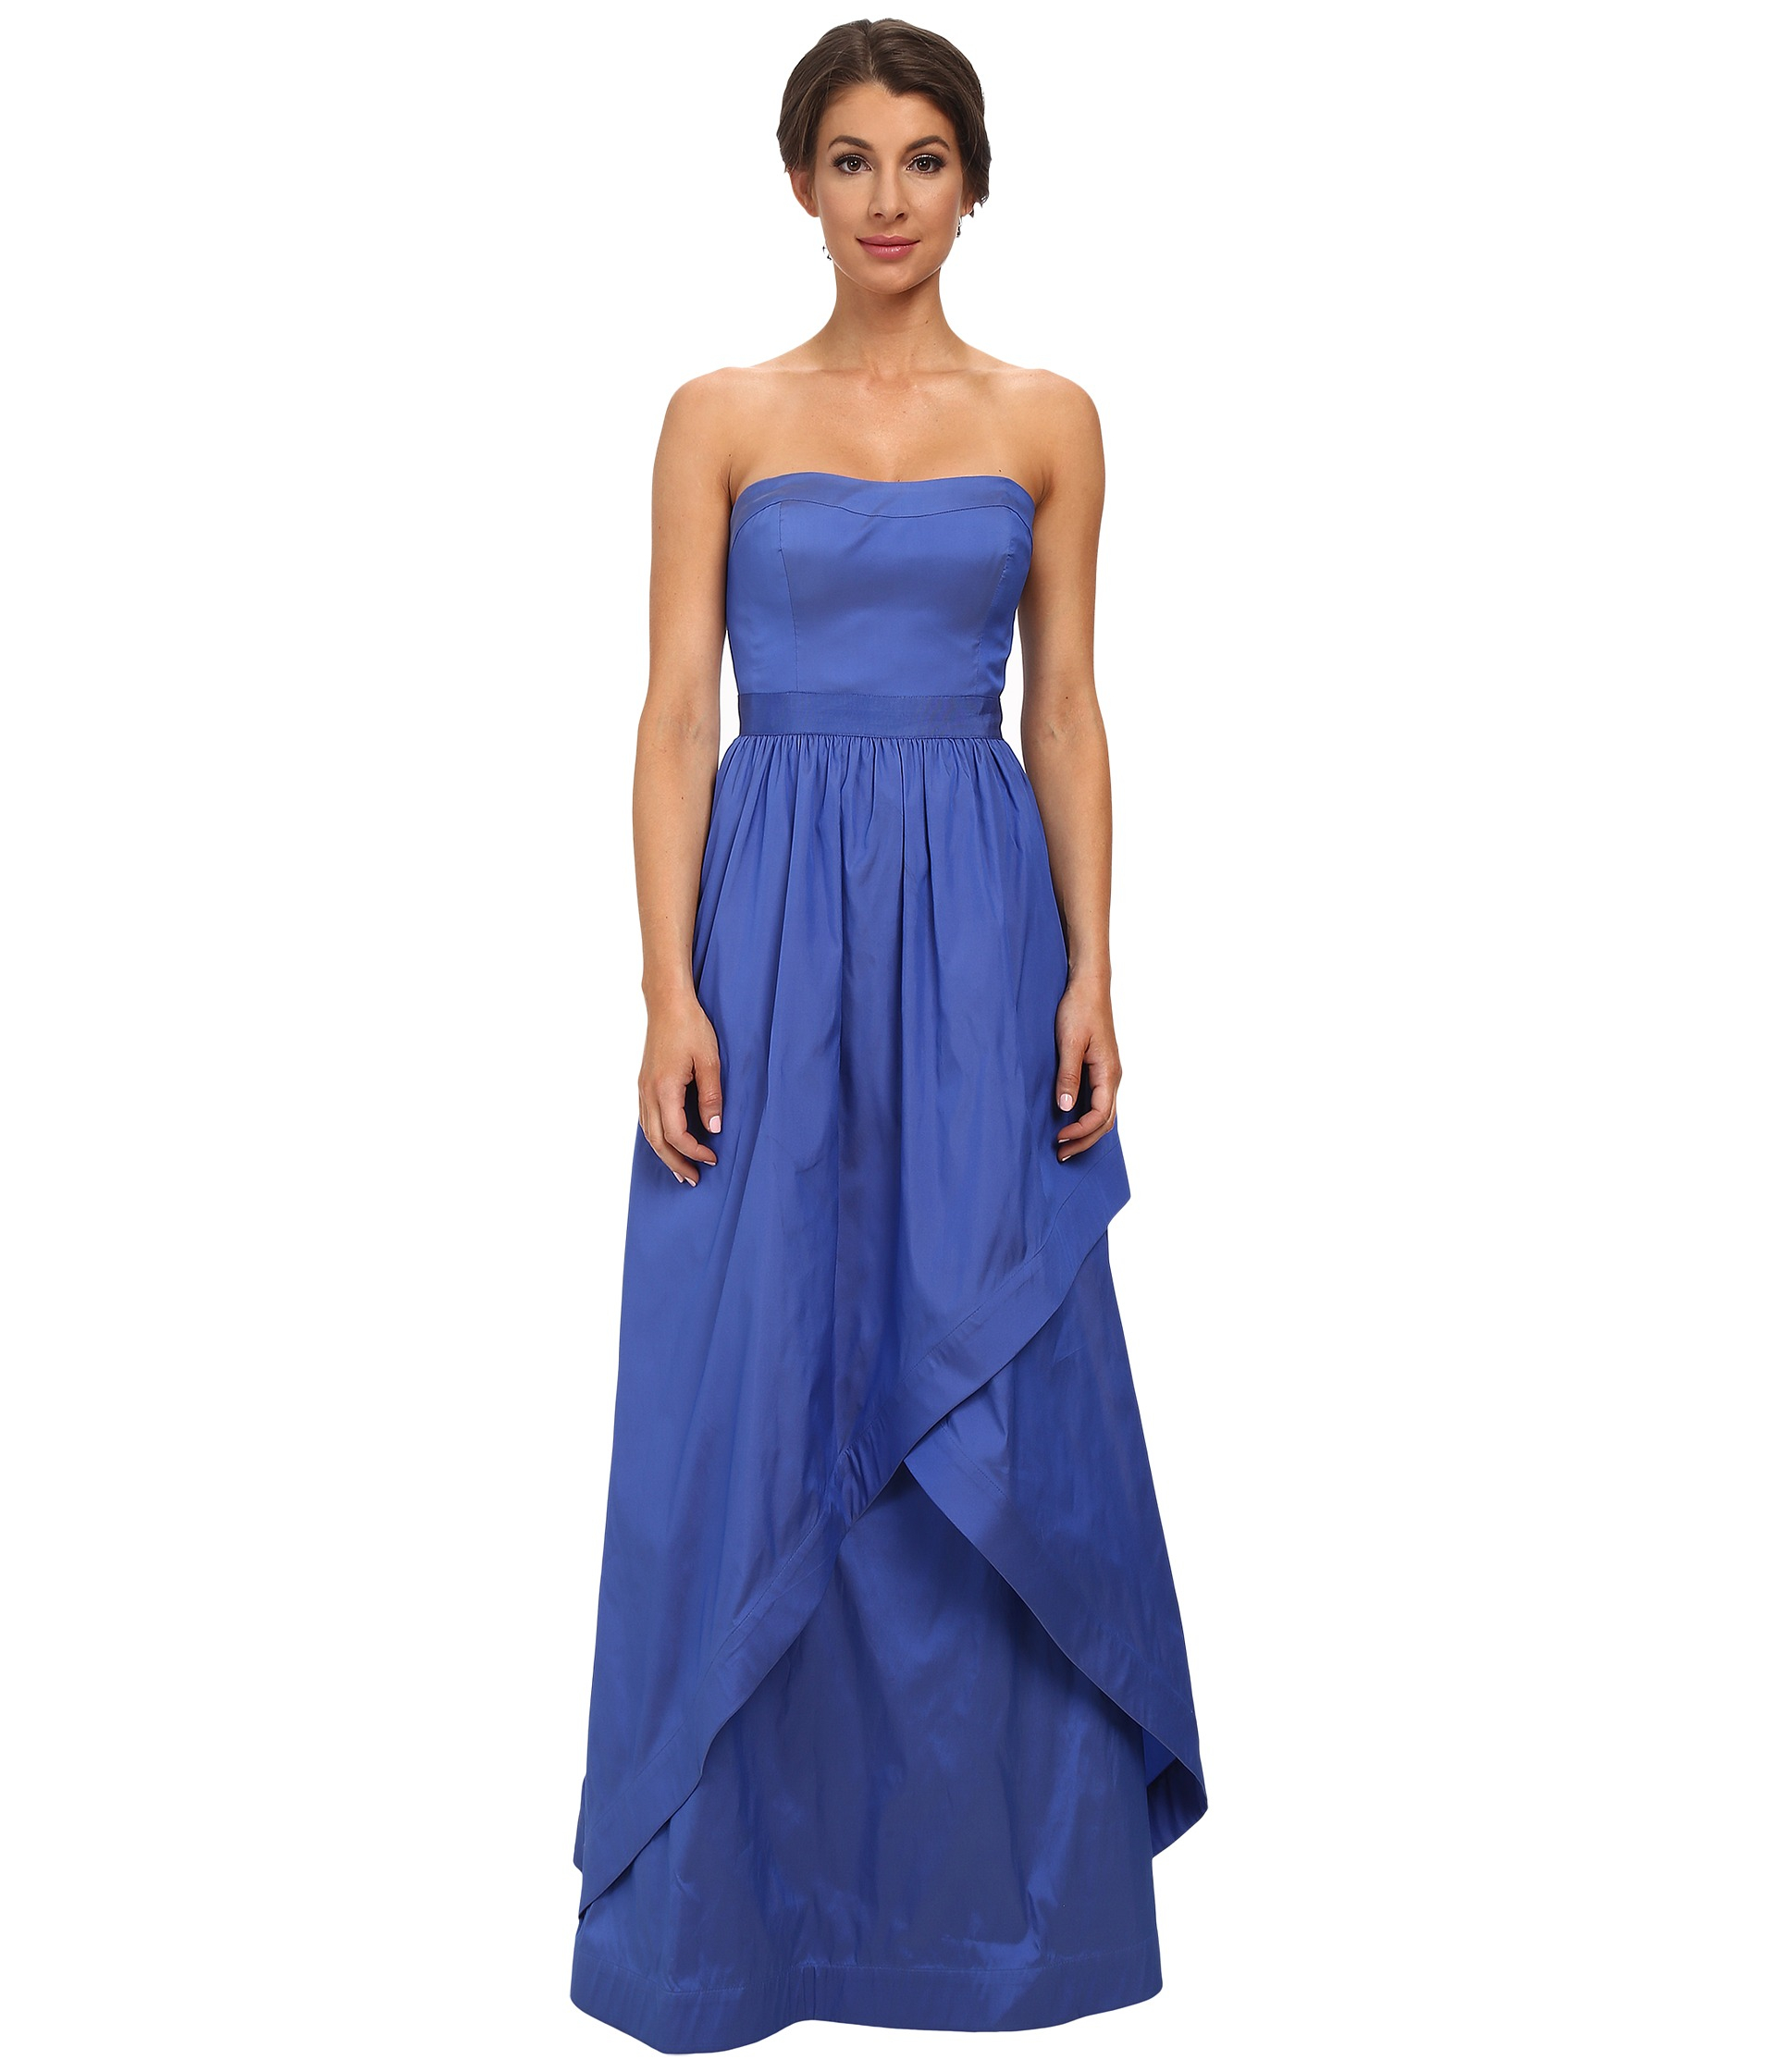 Lyst - Adrianna Papell Strapless Taffeta Ball Gown W/ Cross Skirt ...